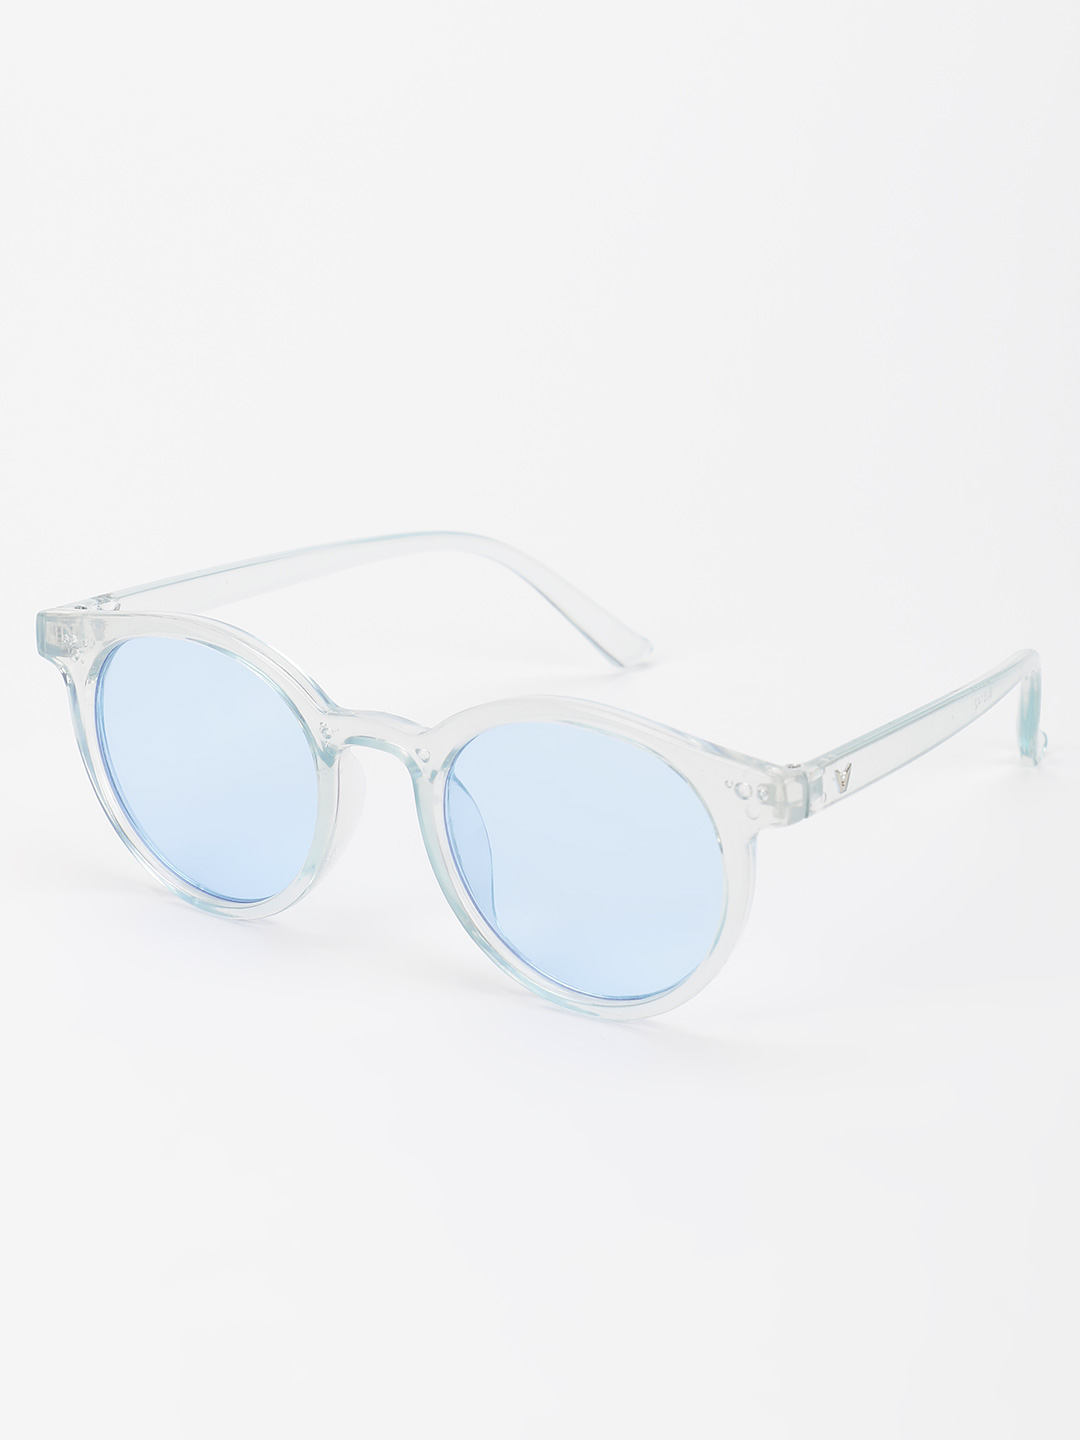 Pataaka Blue Tinted Lens Round Sunglasses 1